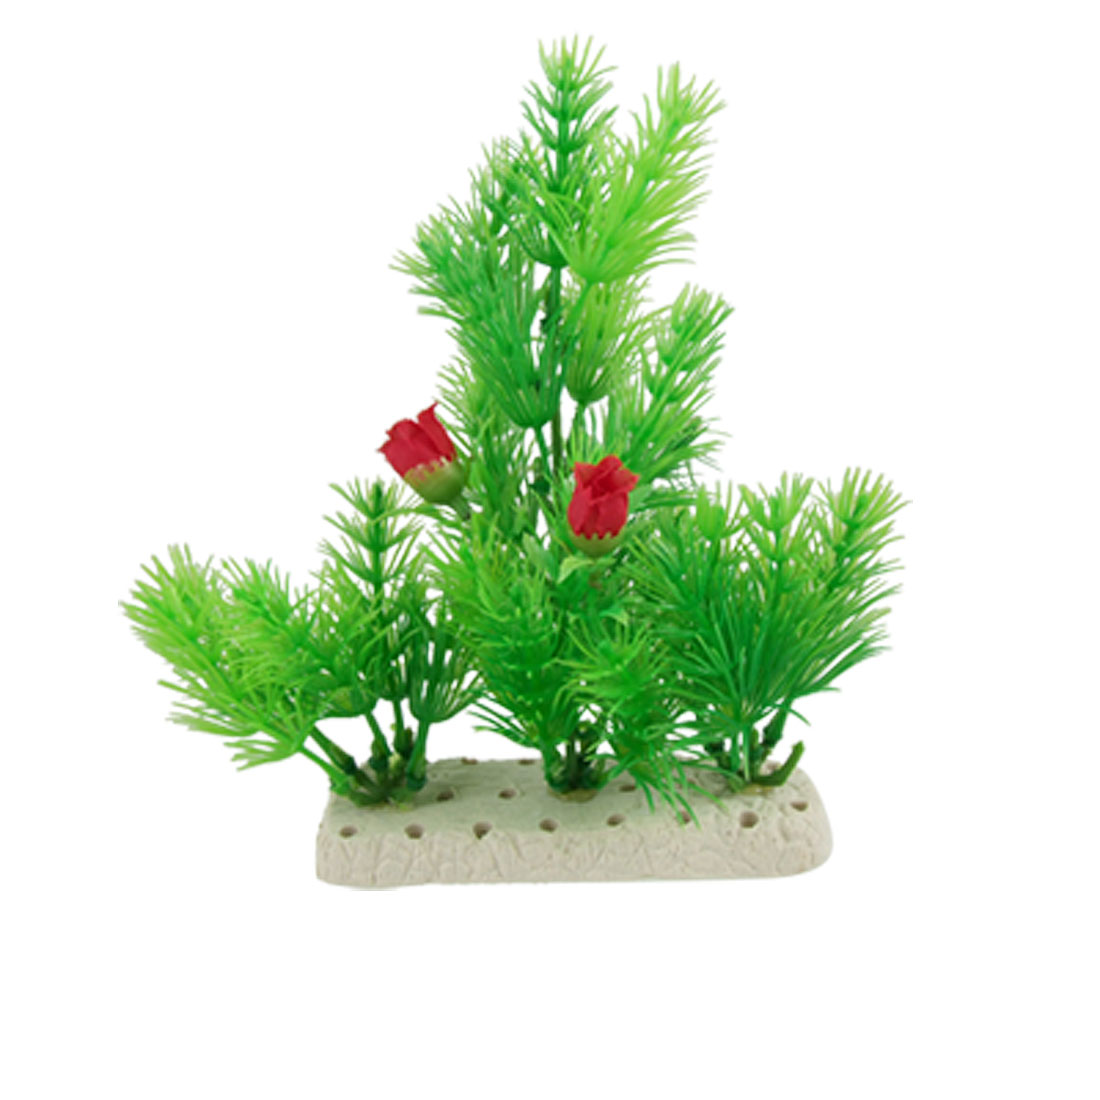 Artificial Green Plastic Plant w Flowers for Aquarium Fish Tank